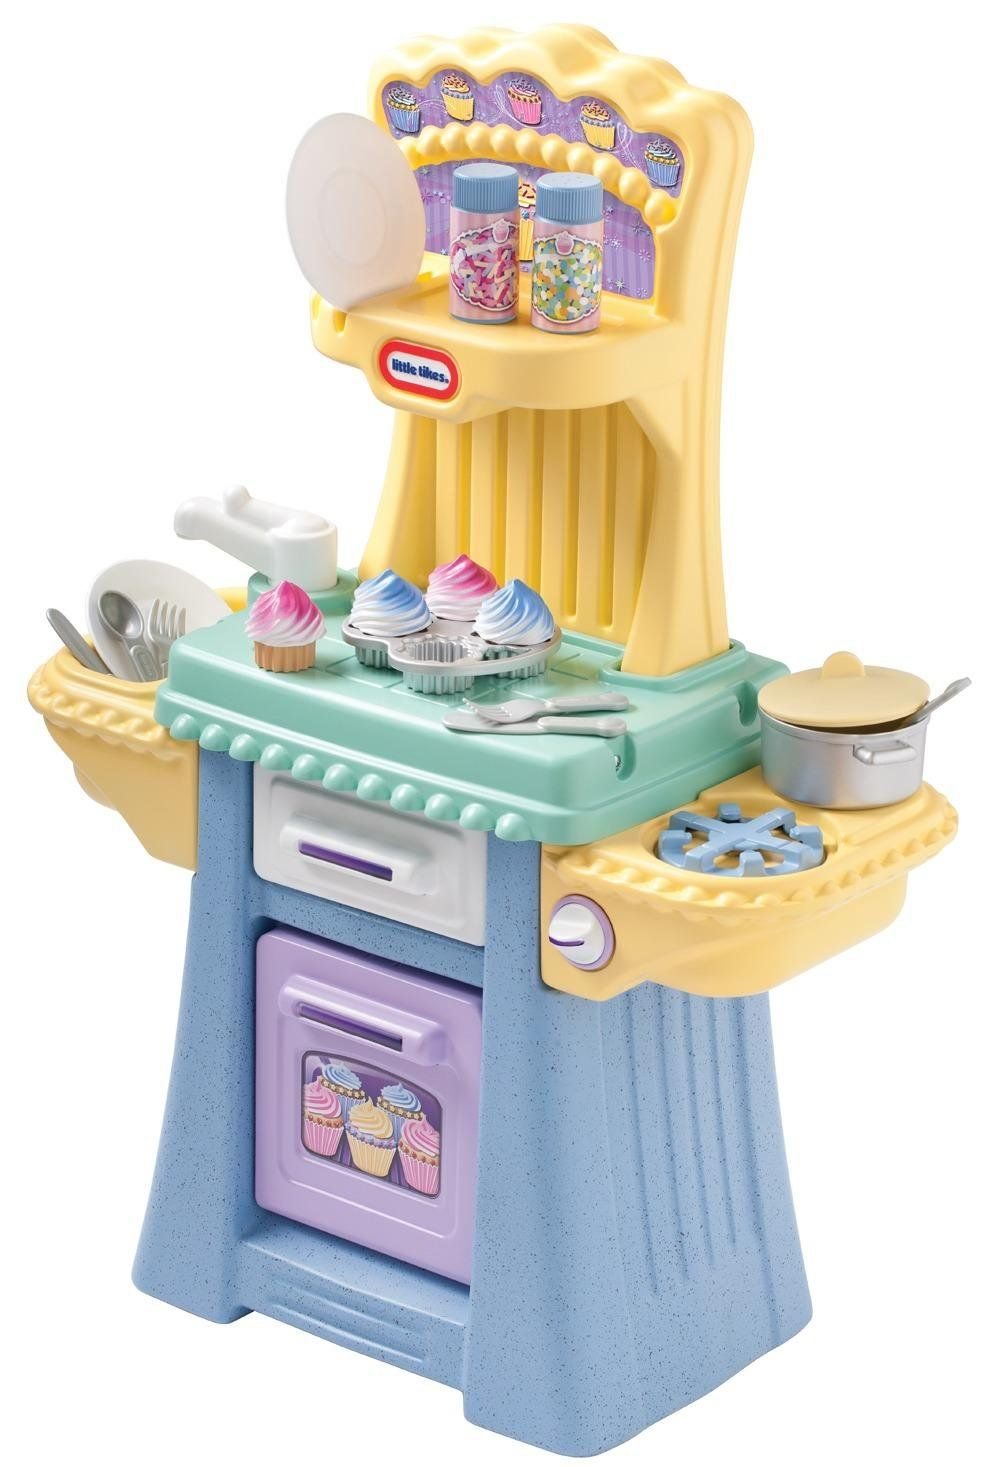 Ages 2 and up, but wow, a cute cupcake kitchen by Little Tikes ...